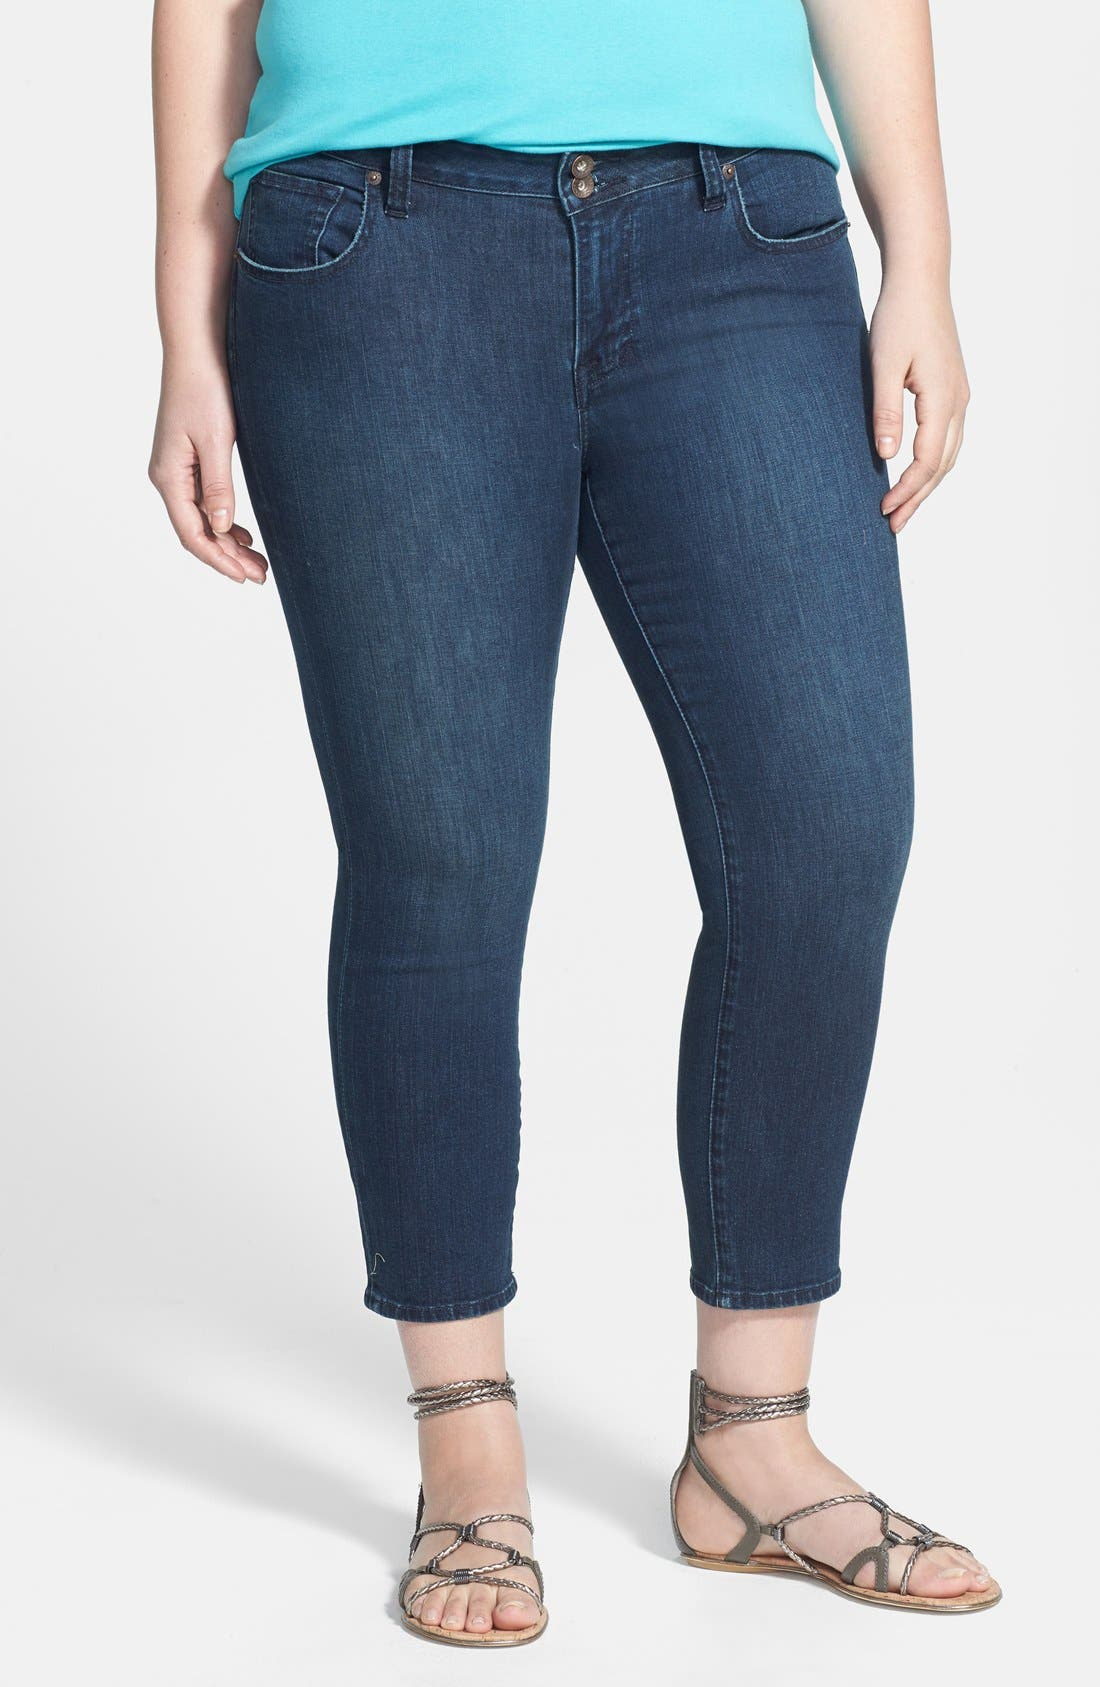 Alternate Image 1 Selected - Lucky Brand 'New Ginger' Capris (Plus Size)